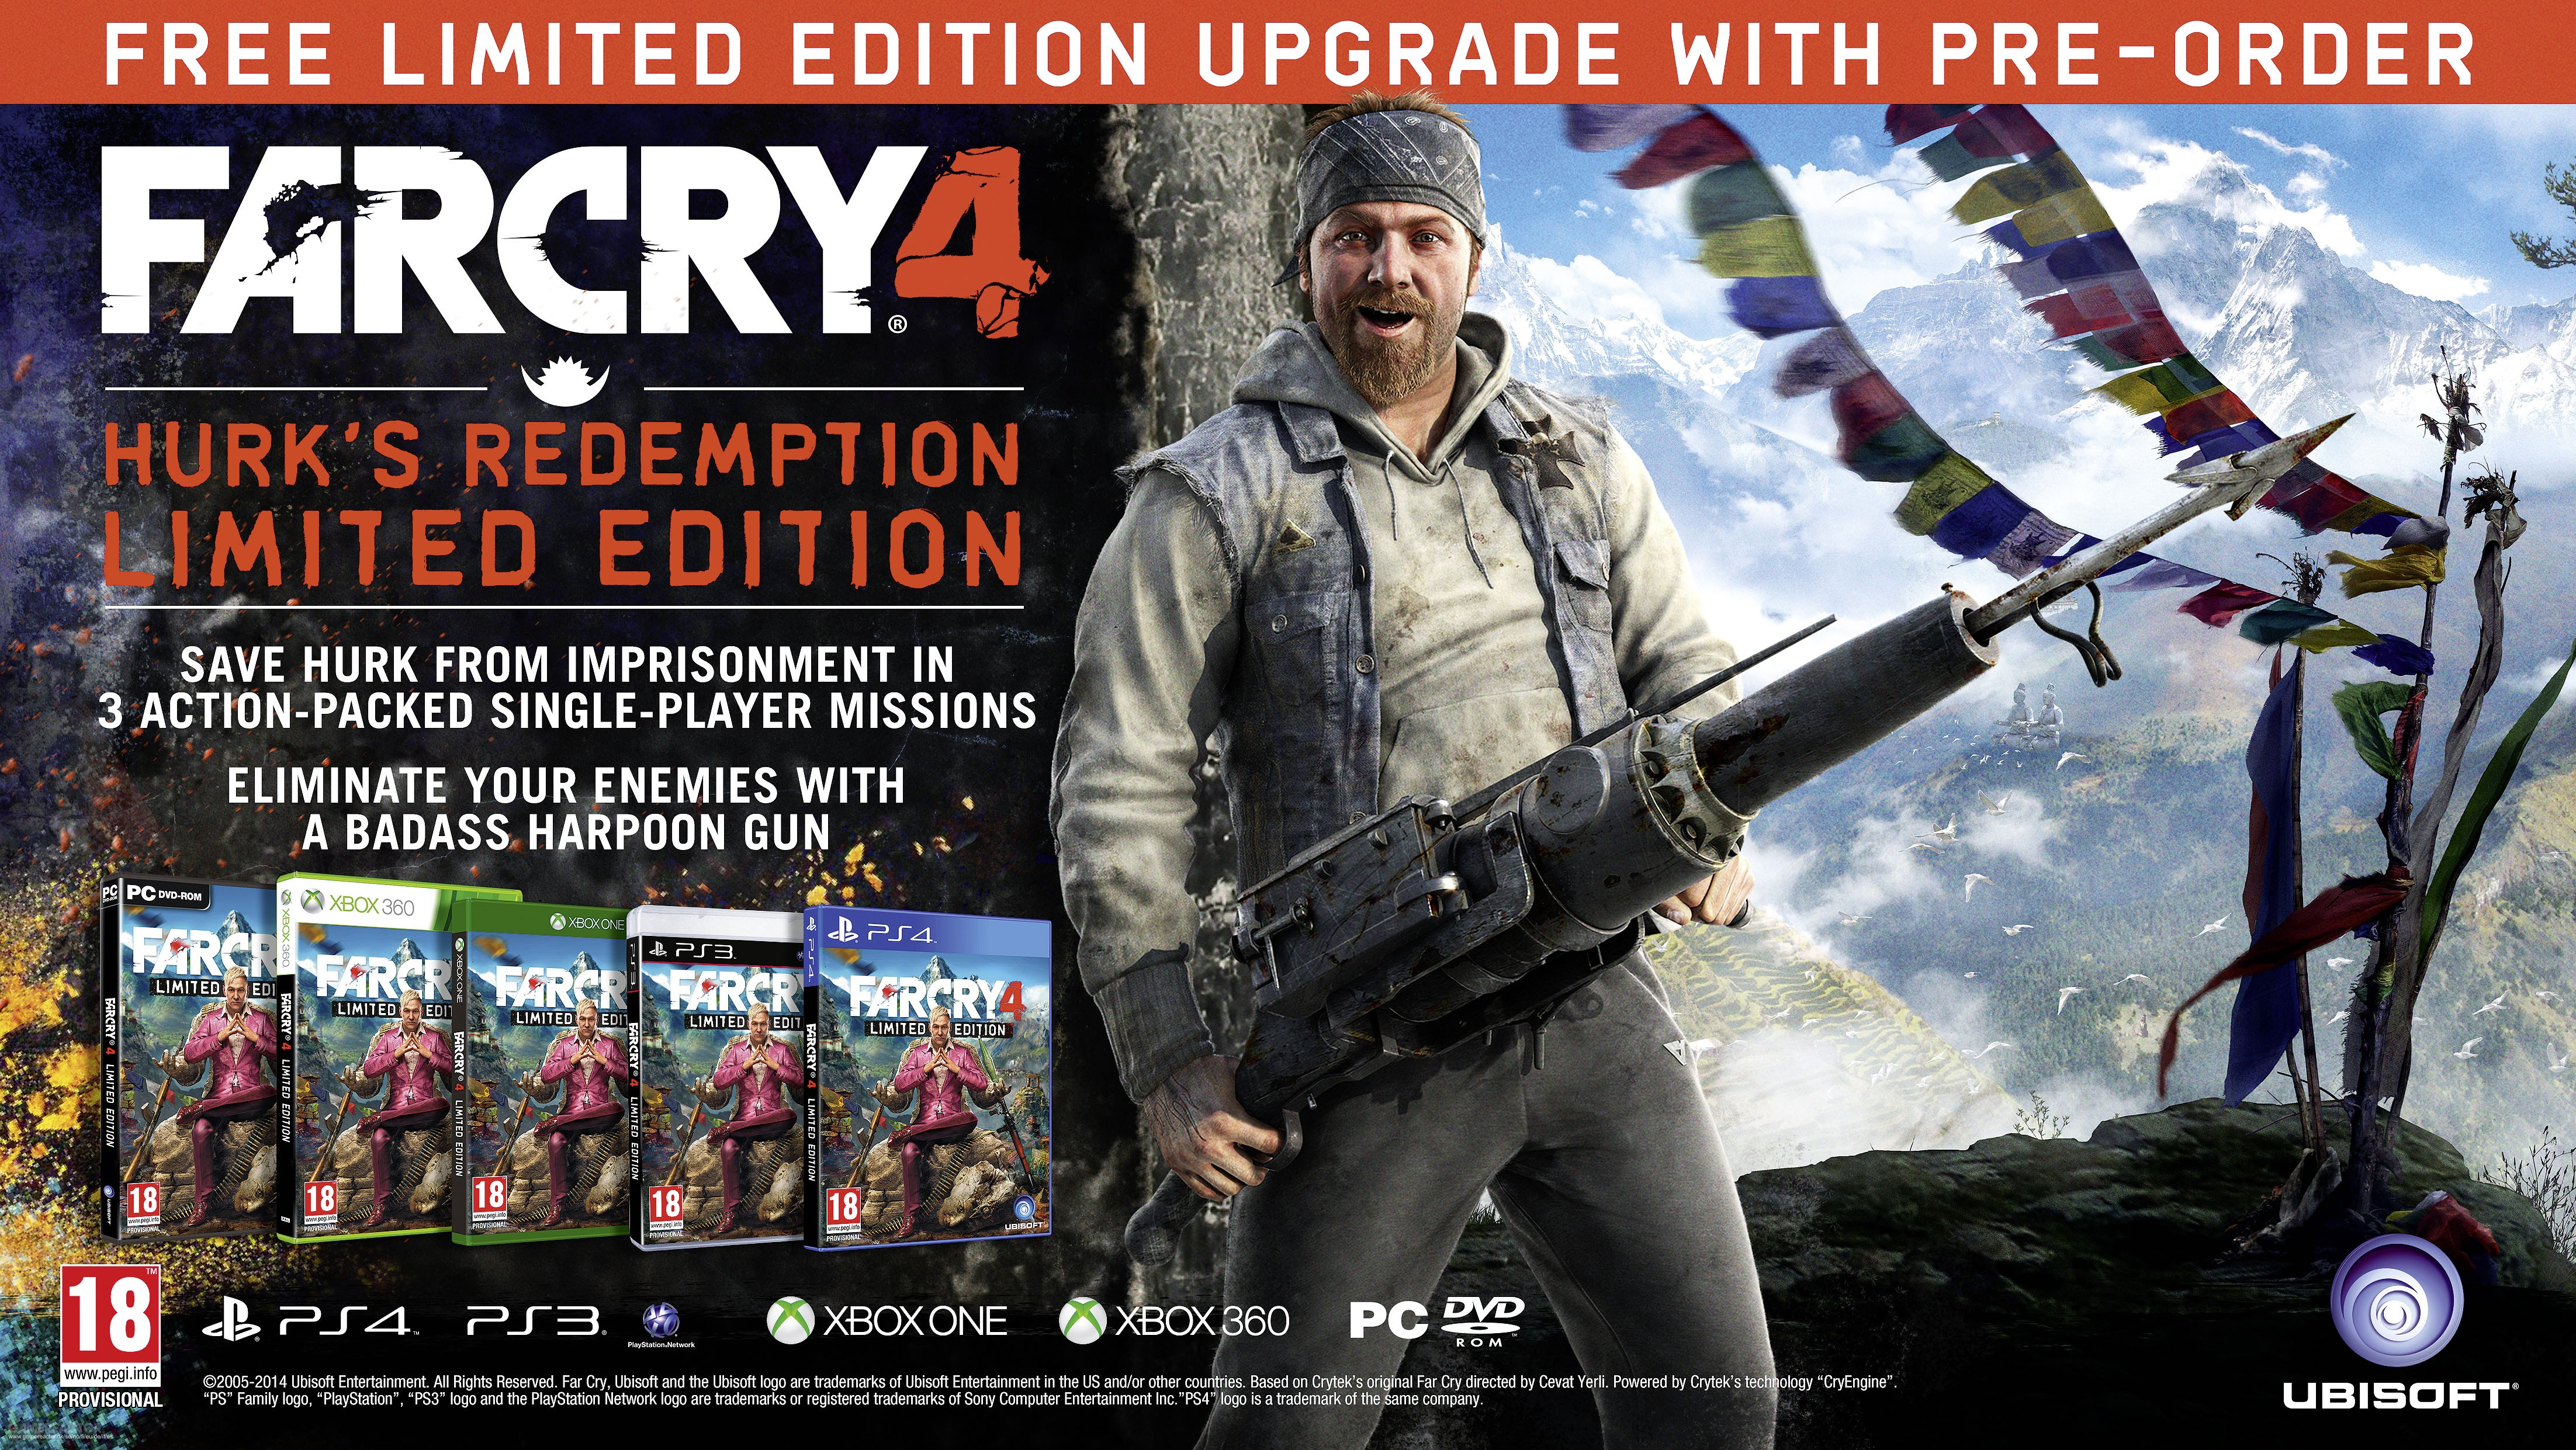 Pictures Of Far Cry 4 Releasing November On Pc And Consoles 2 Farcry4 Game